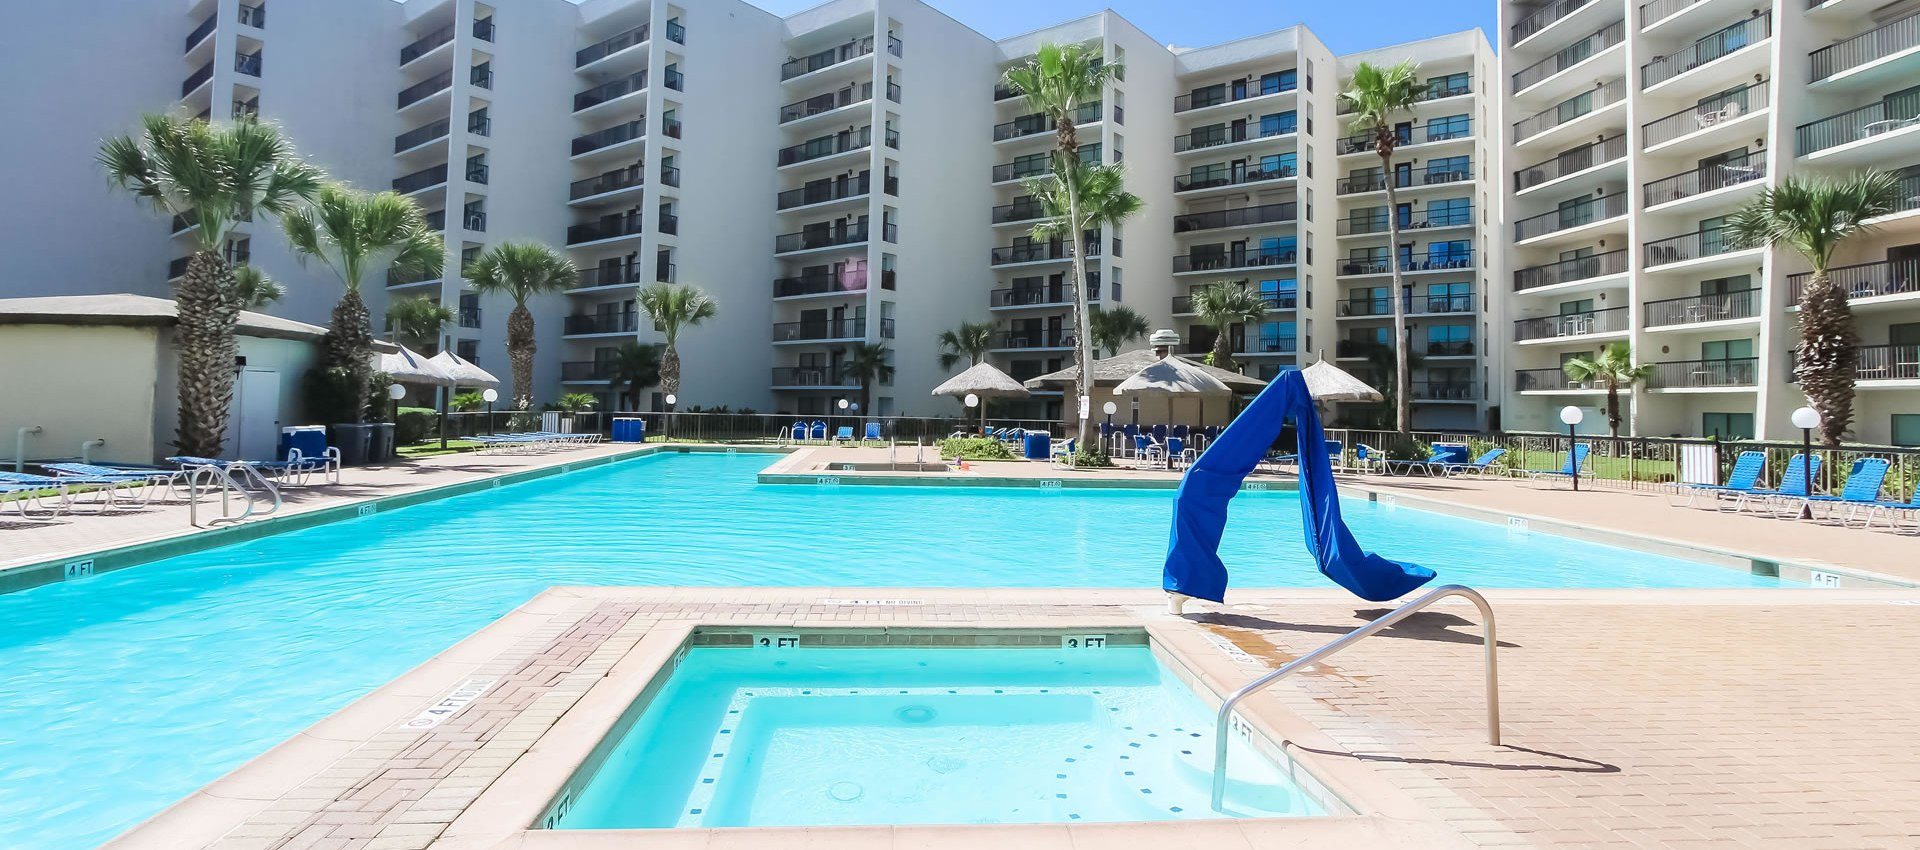 Vacation Rentals Ownership In South Padre Island Texas